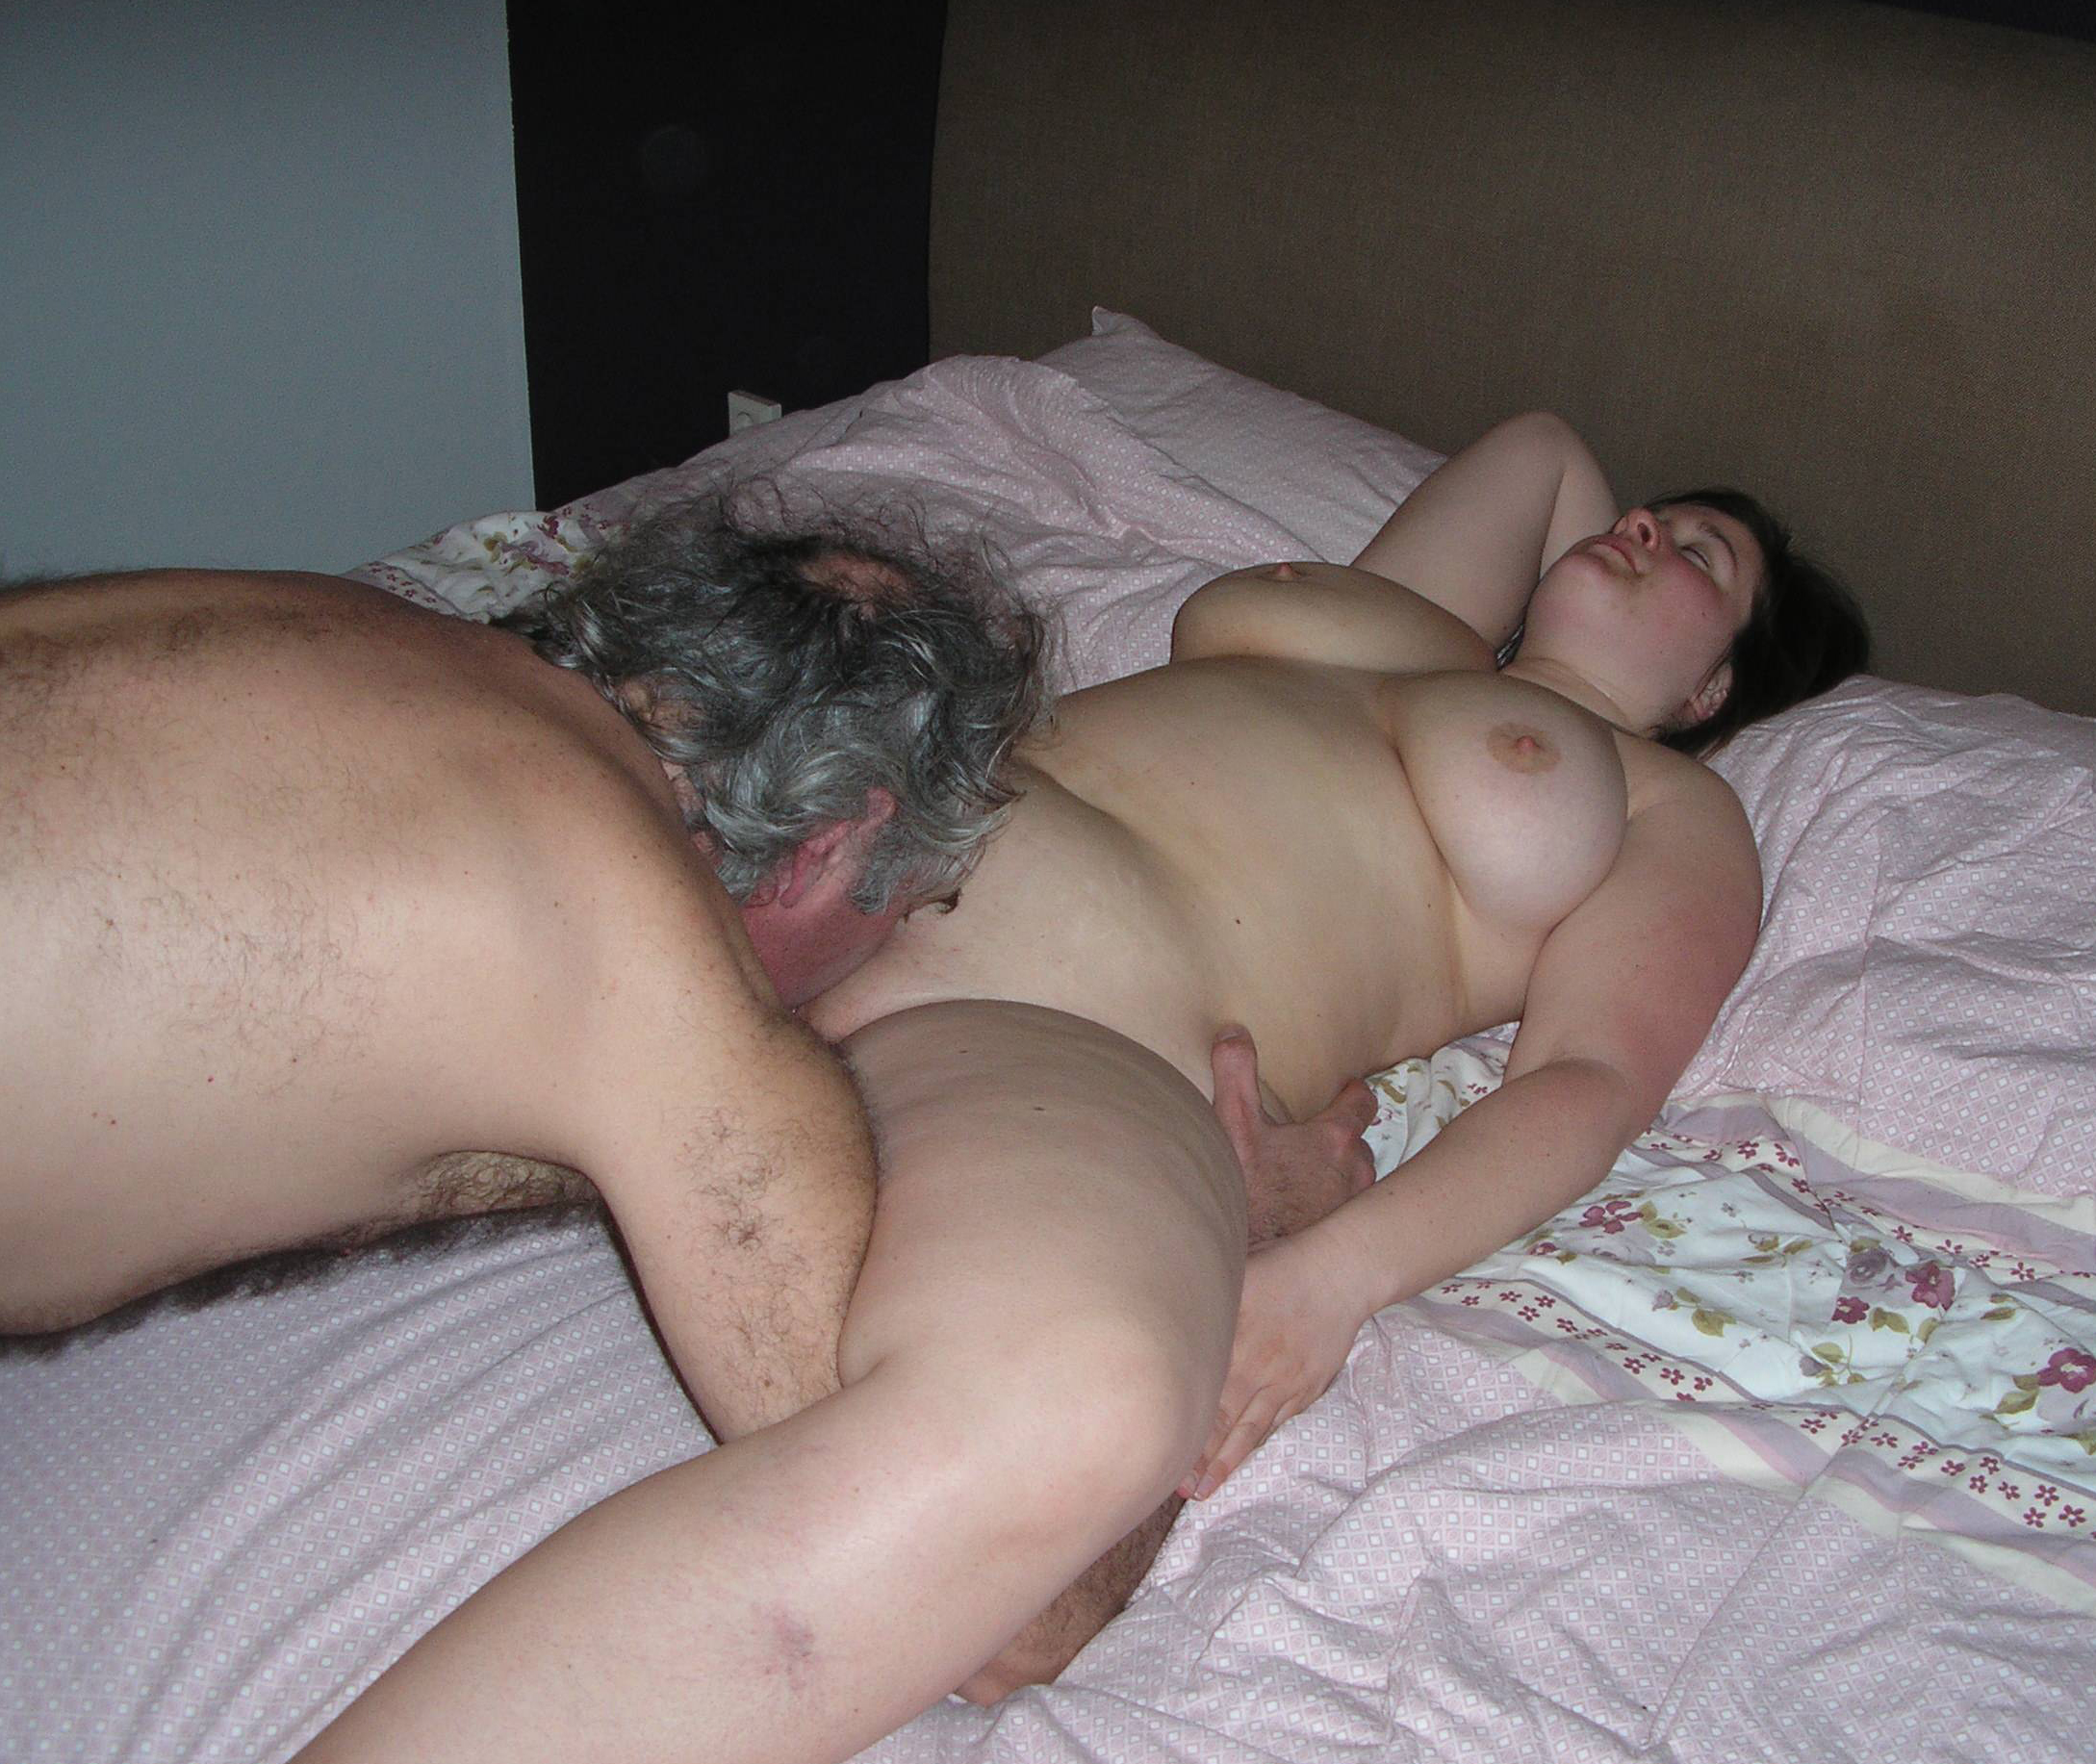 Yes dear and wife swapping